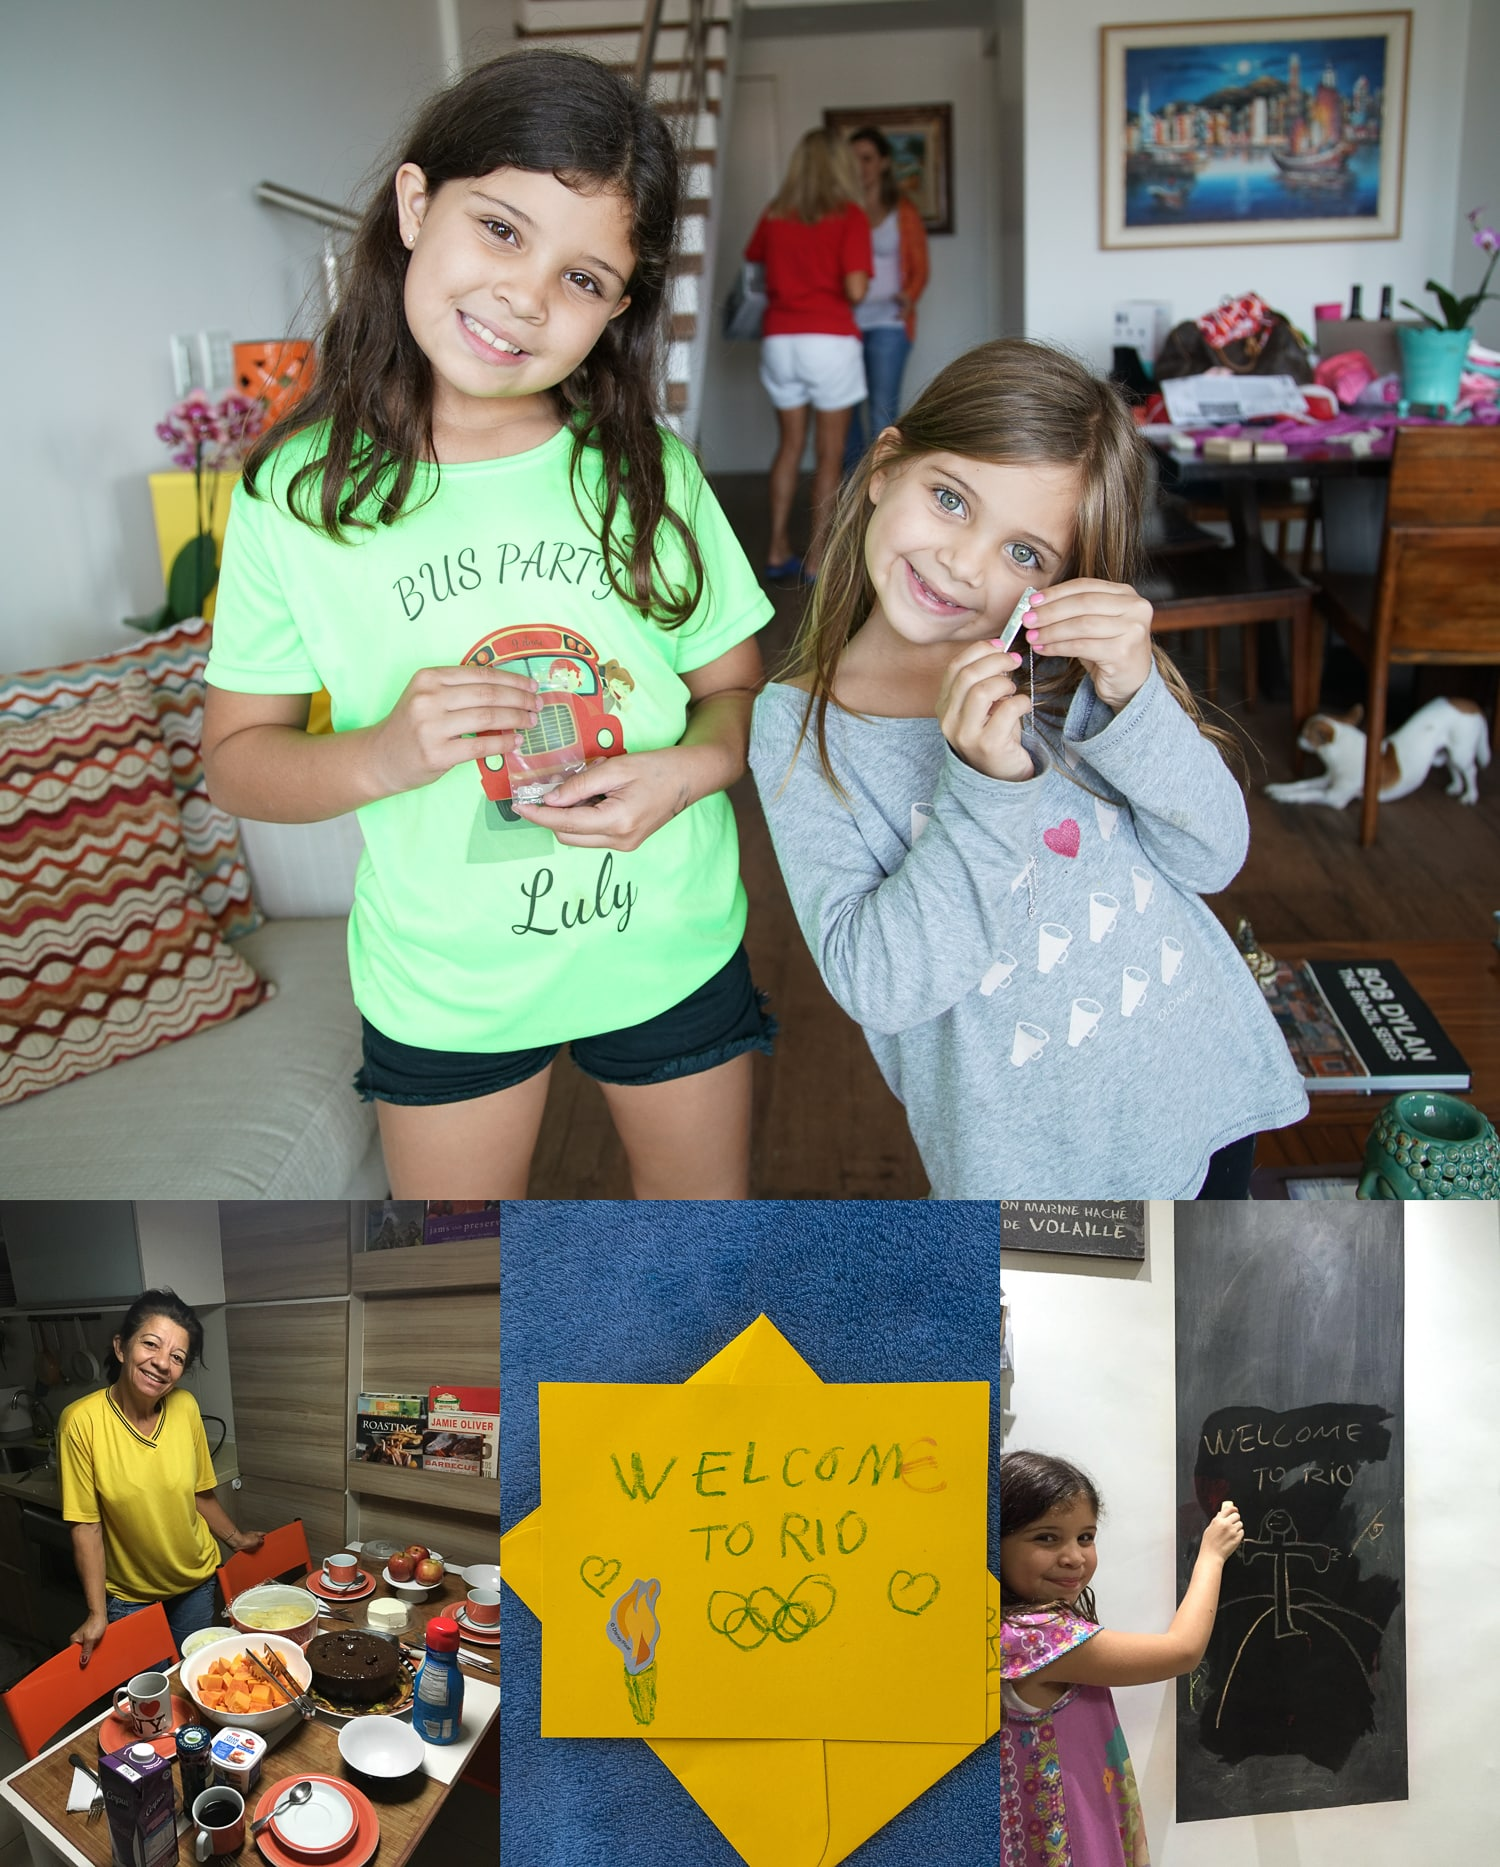 We were greeted by George and Paty's adorable daughters Gaby and Bia and their drawings. Their maid, Penha, also made us a full breakfast the next morning. What a nice surprise!